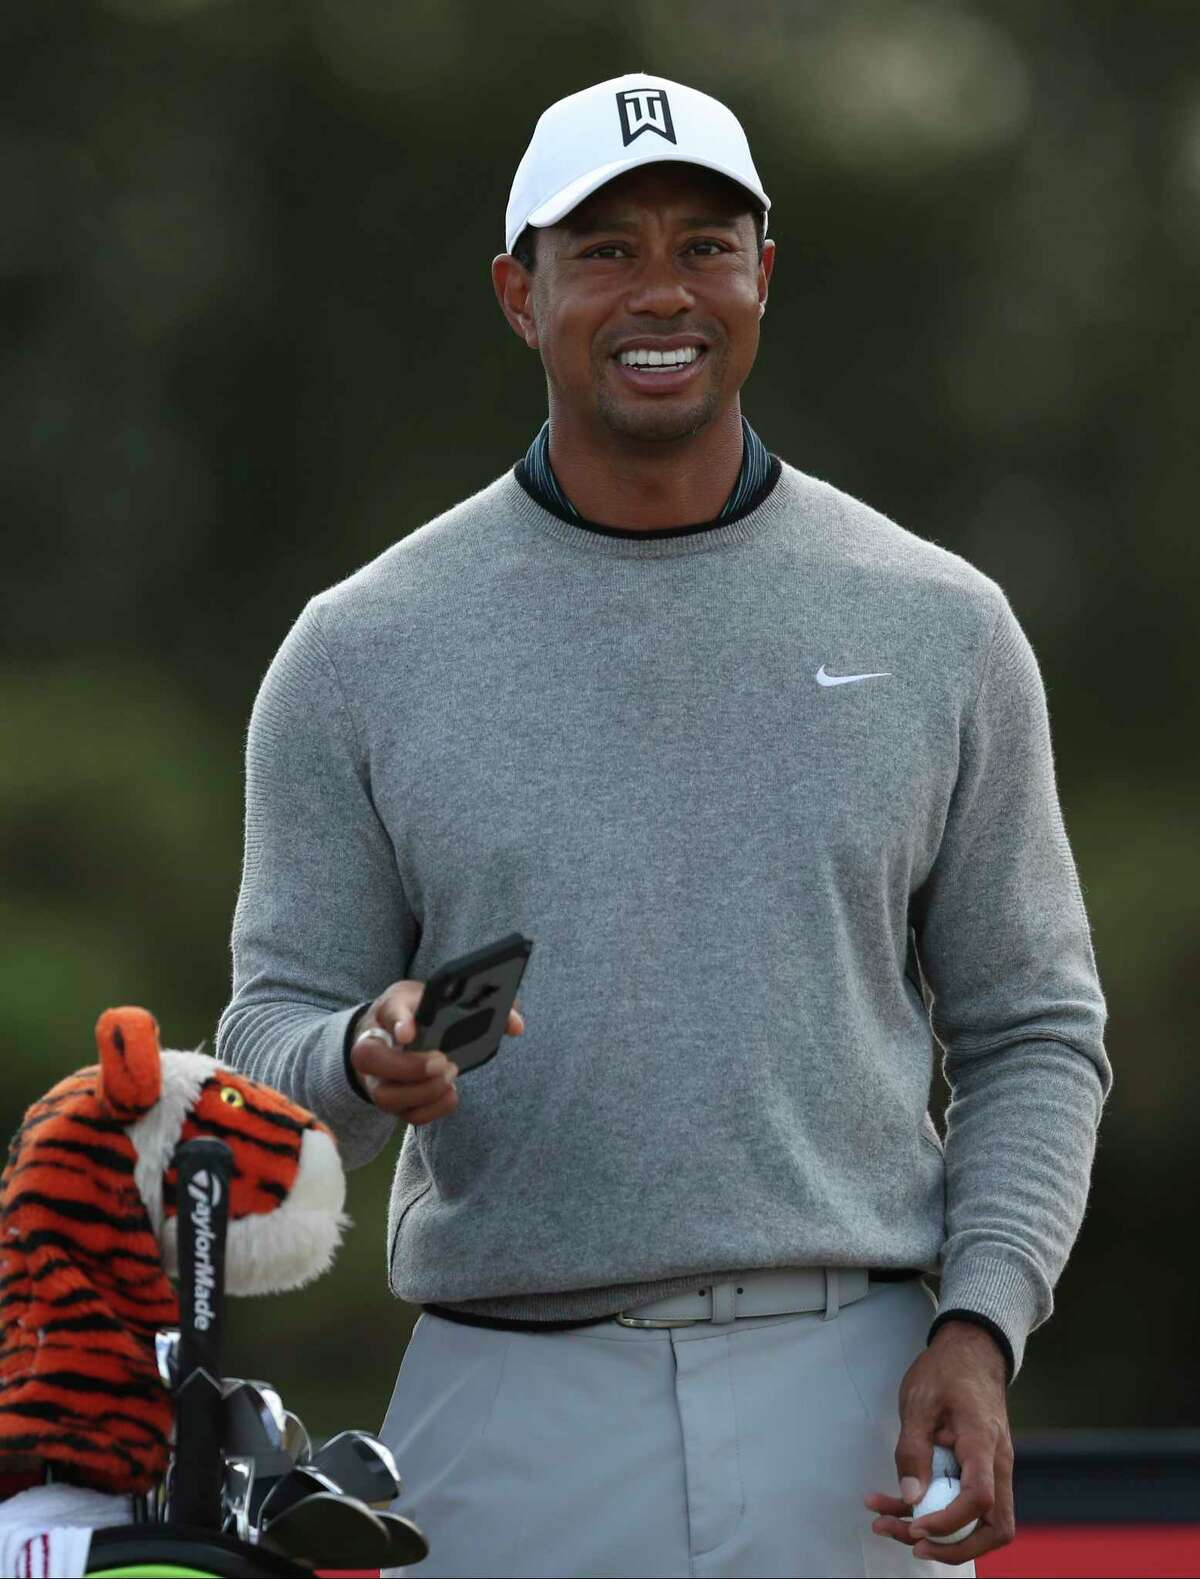 Tiger Woods of the US prepares to tee off the 13th hole during a practice round ahead of the British Open Golf Championship in Carnoustie, Scotland, Wednesday July 18, 2018. (AP Photo/Jon Super)